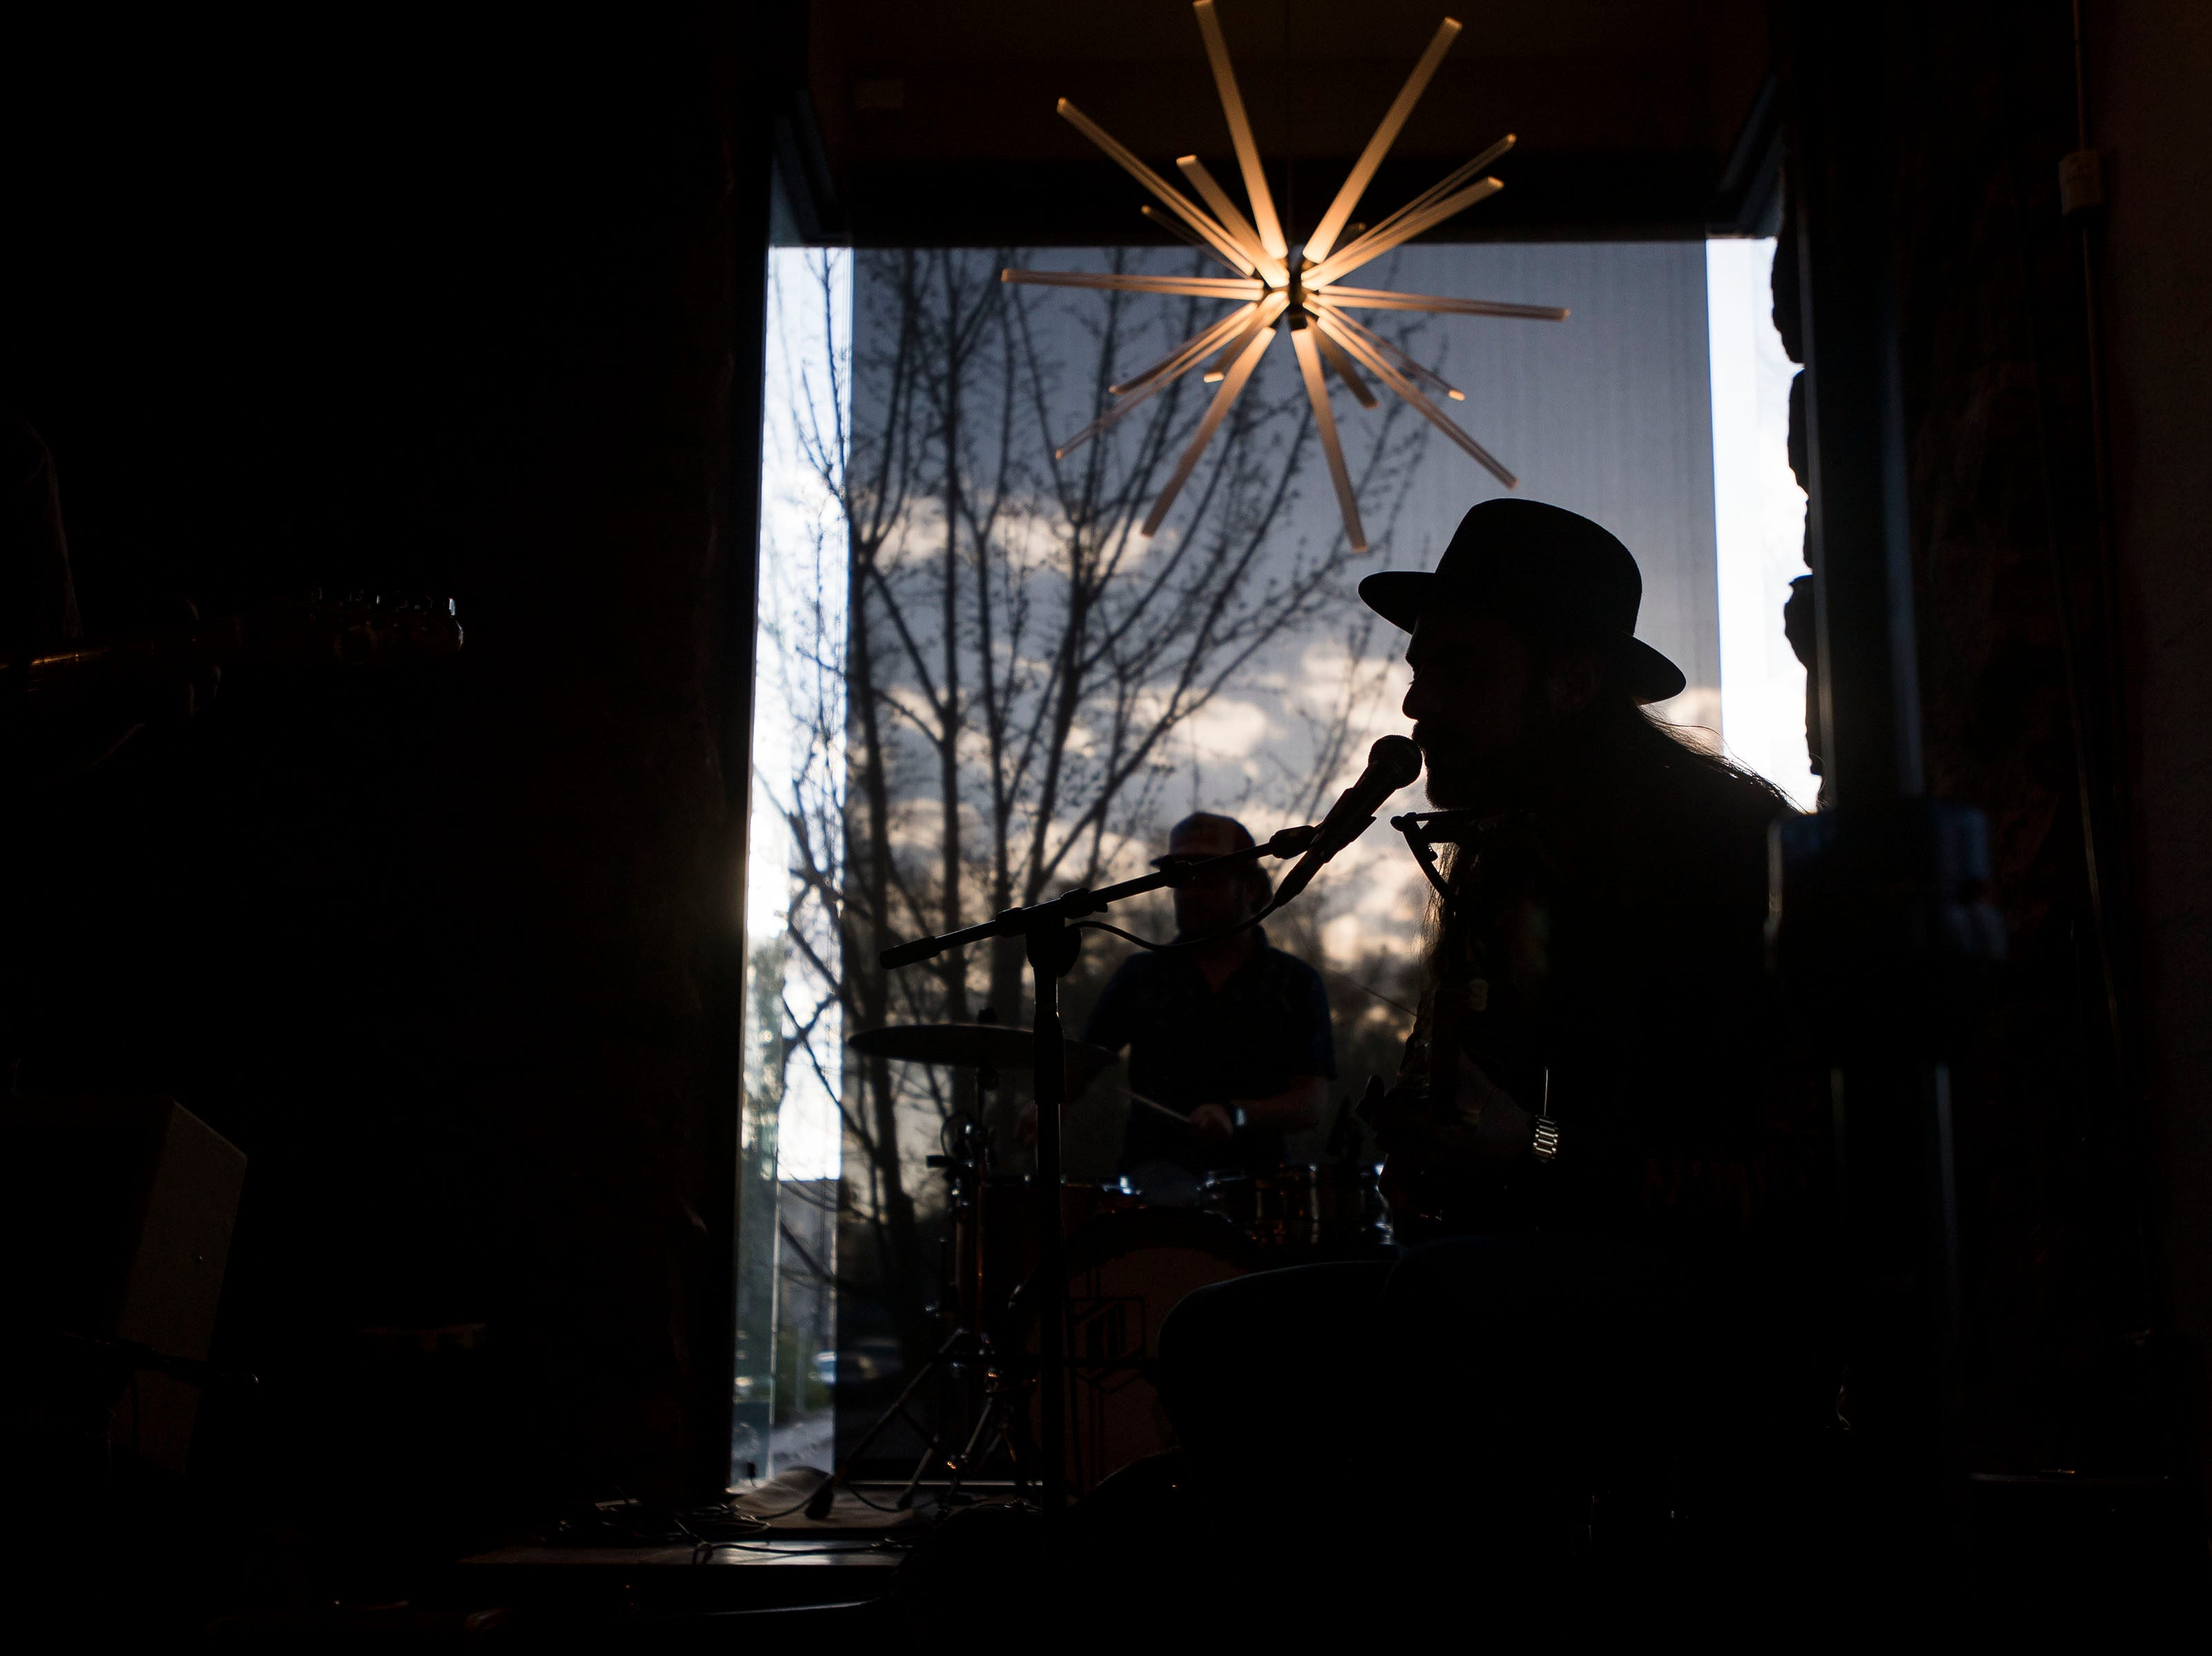 Grant Sabin and the Juke Joint Highball plays at The Mayor of Old Town during the FoCoMX XI music festival on Saturday, April 27, 2019, in Fort Collins, Colo.